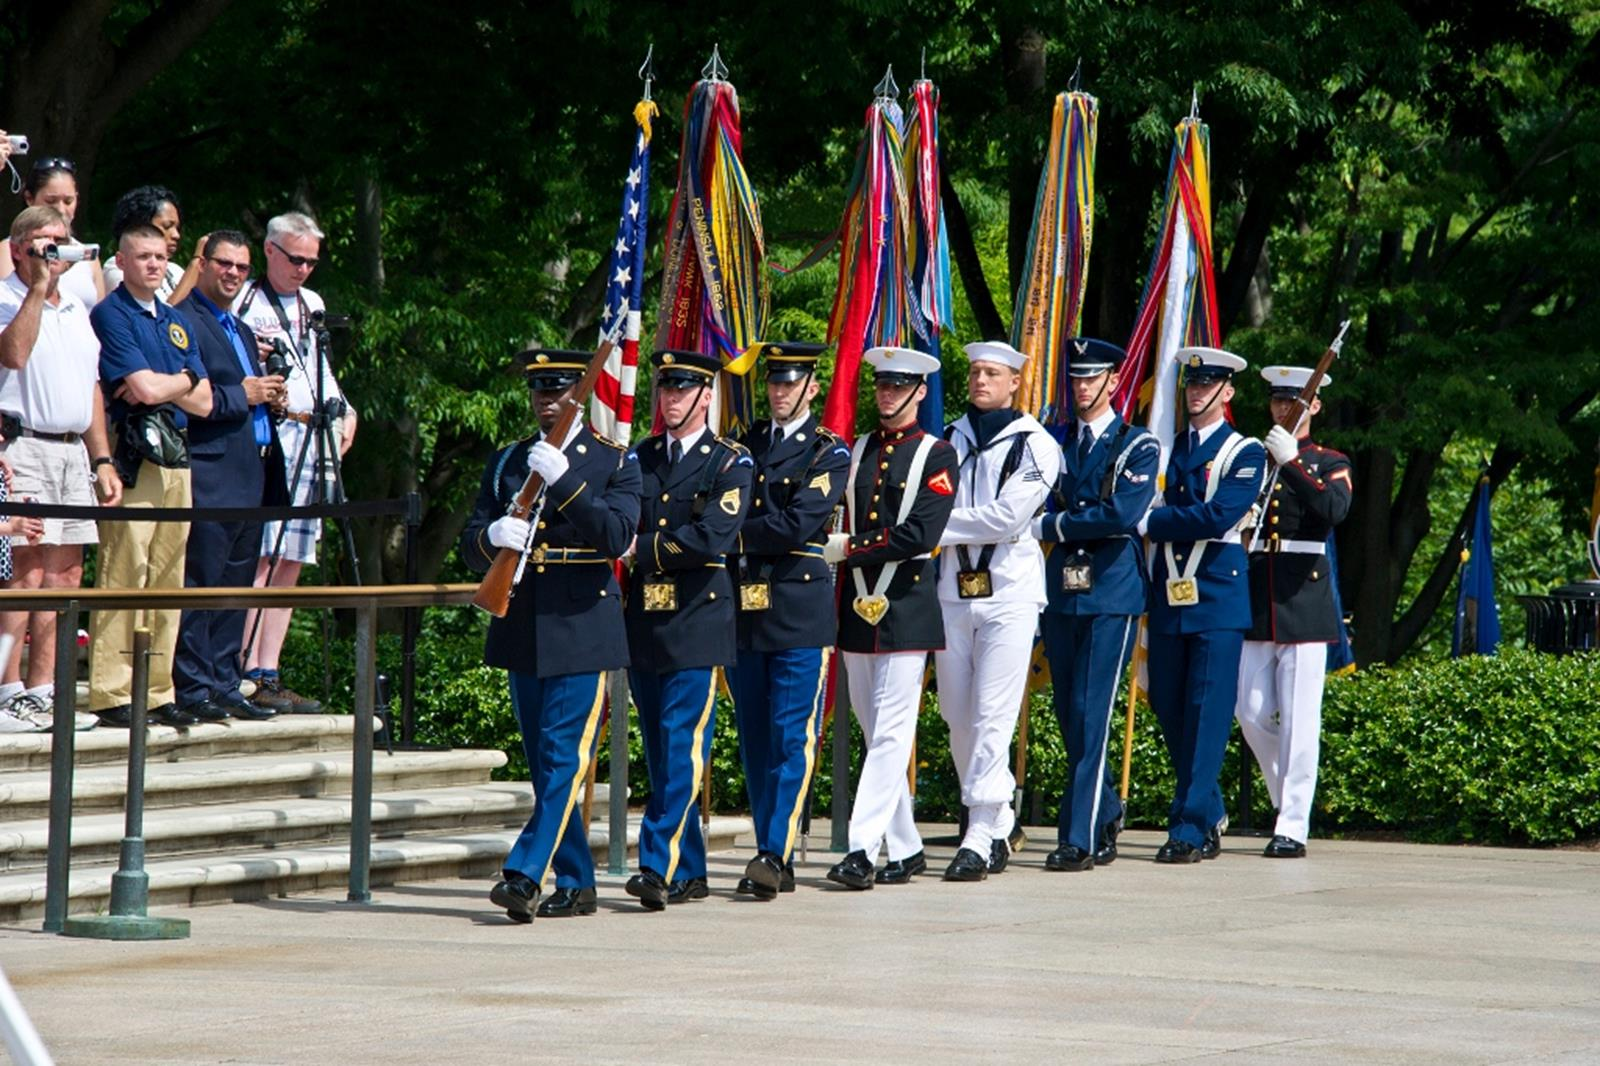 A ceremony at The Tomb of the Unknown Soldier. Credit: Arlington National Cemetery.